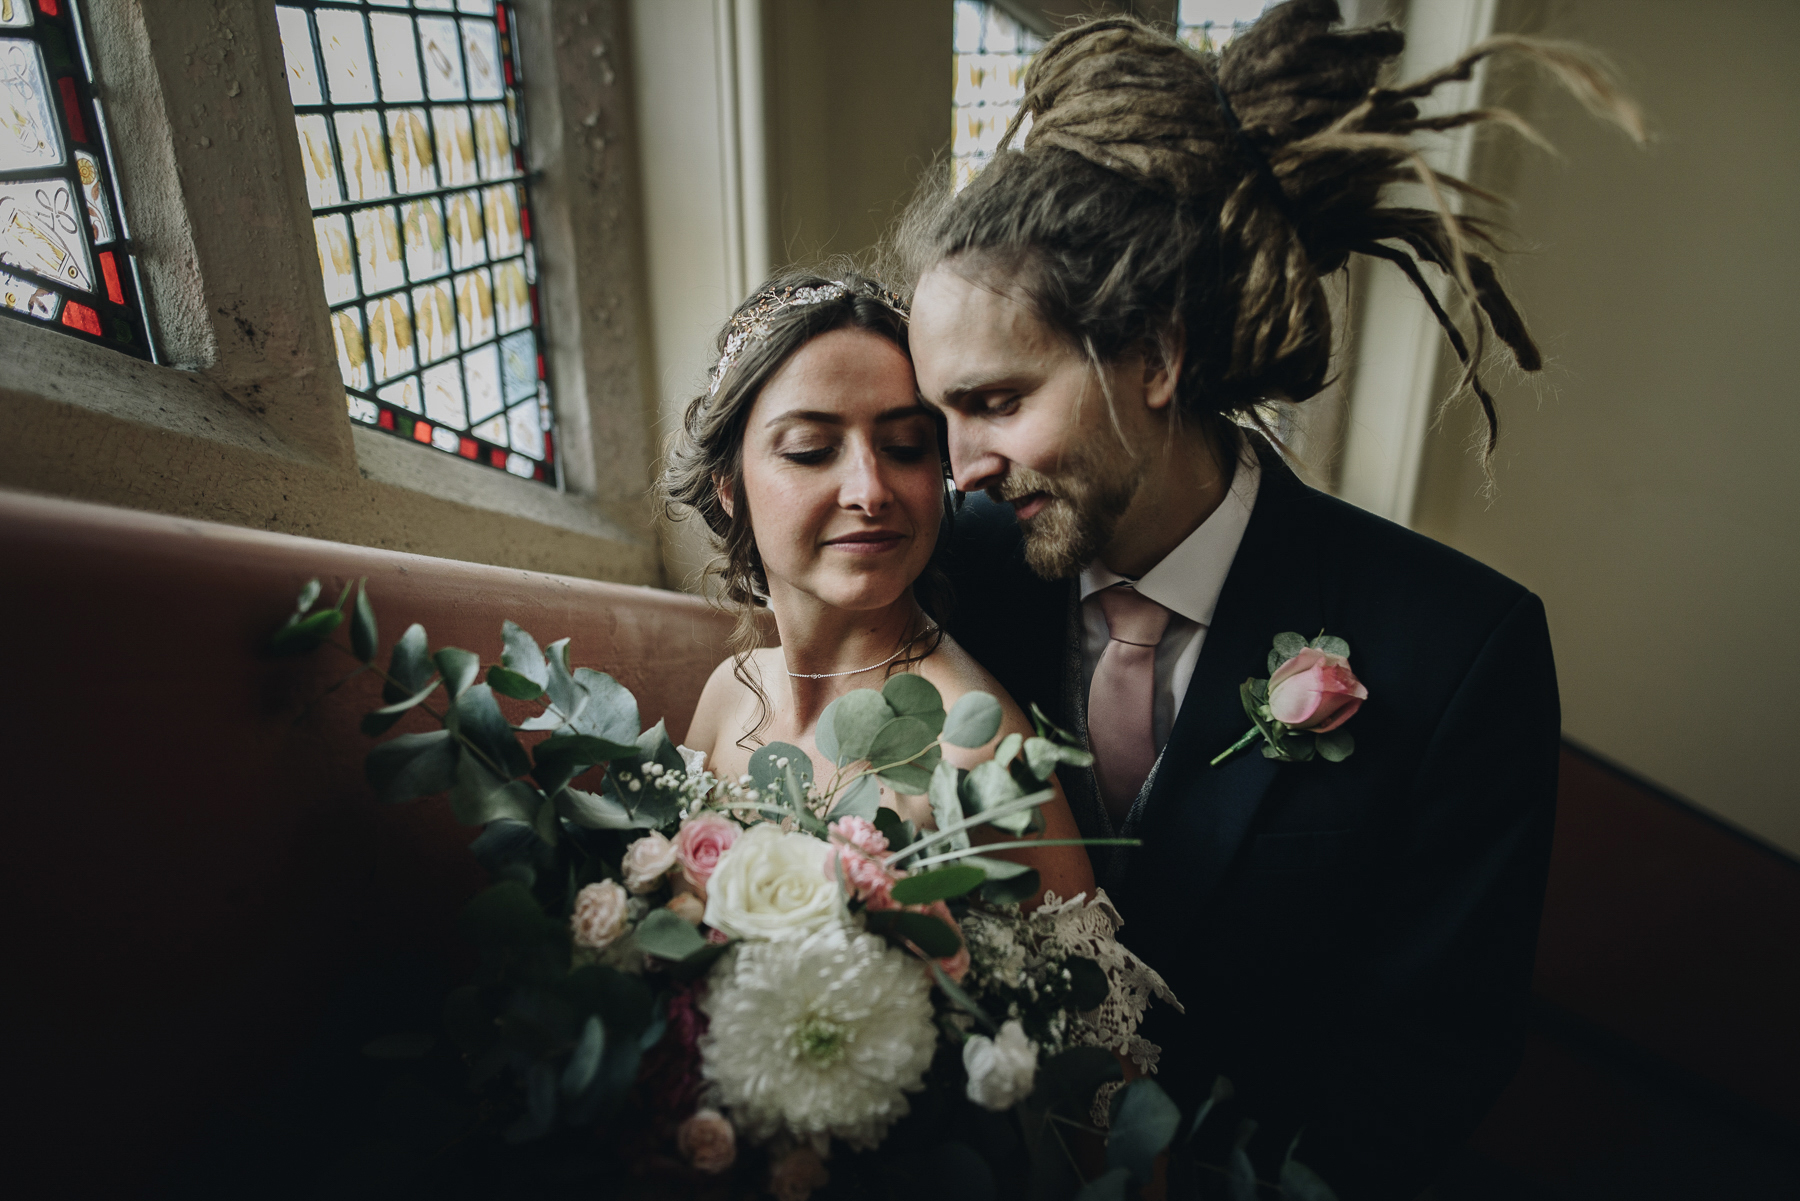 Alternative_Manchester_Wedding_Photography_The_Pin-Up_Bride_Photography-68.jpg